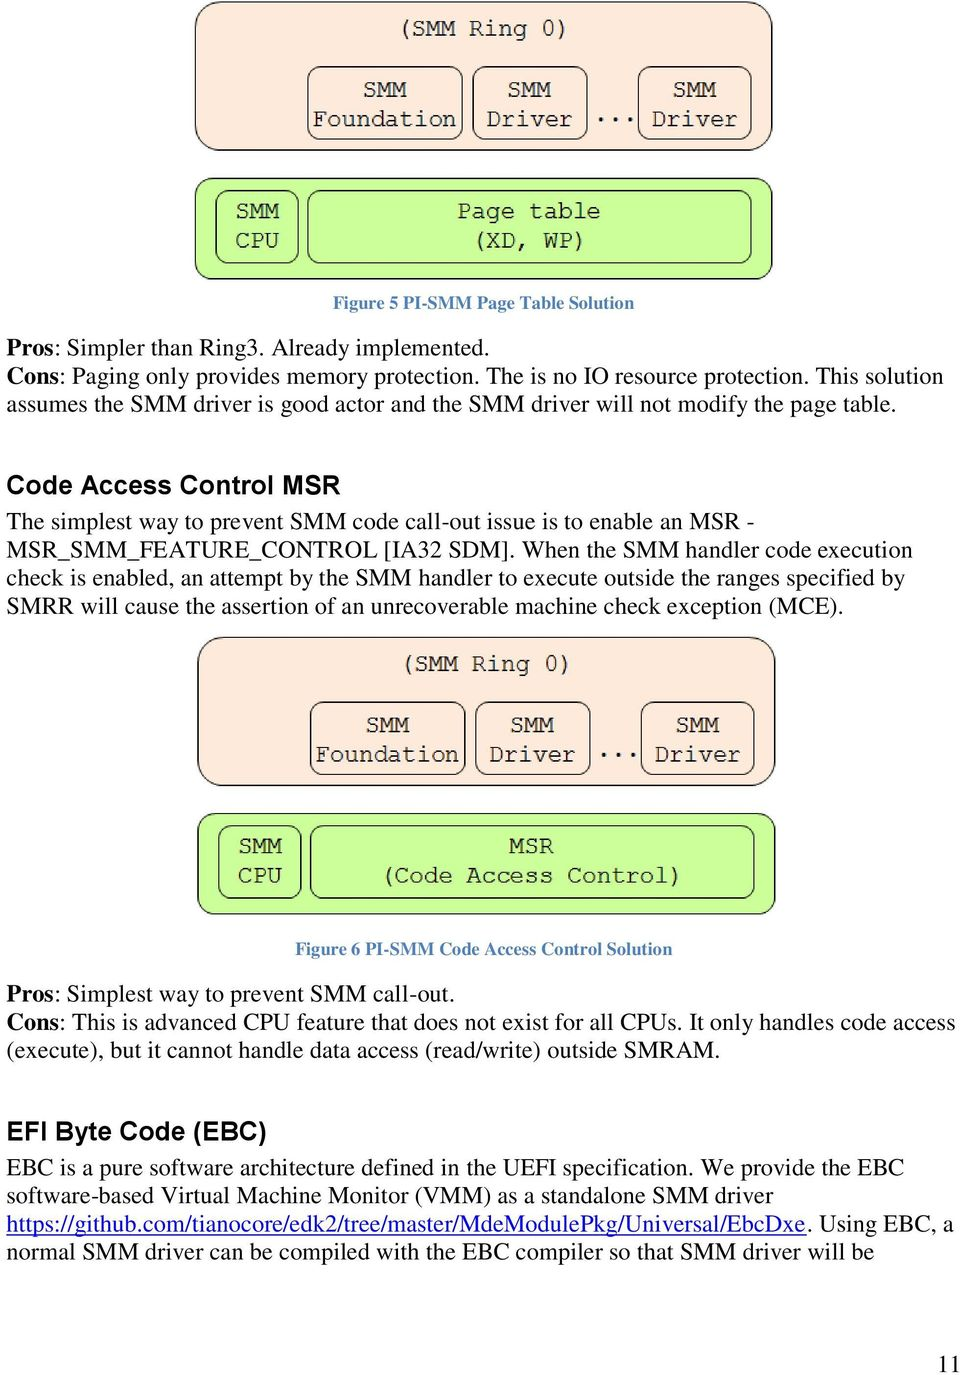 A Tour Beyond BIOS Supporting an SMM Resource Monitor using the EFI